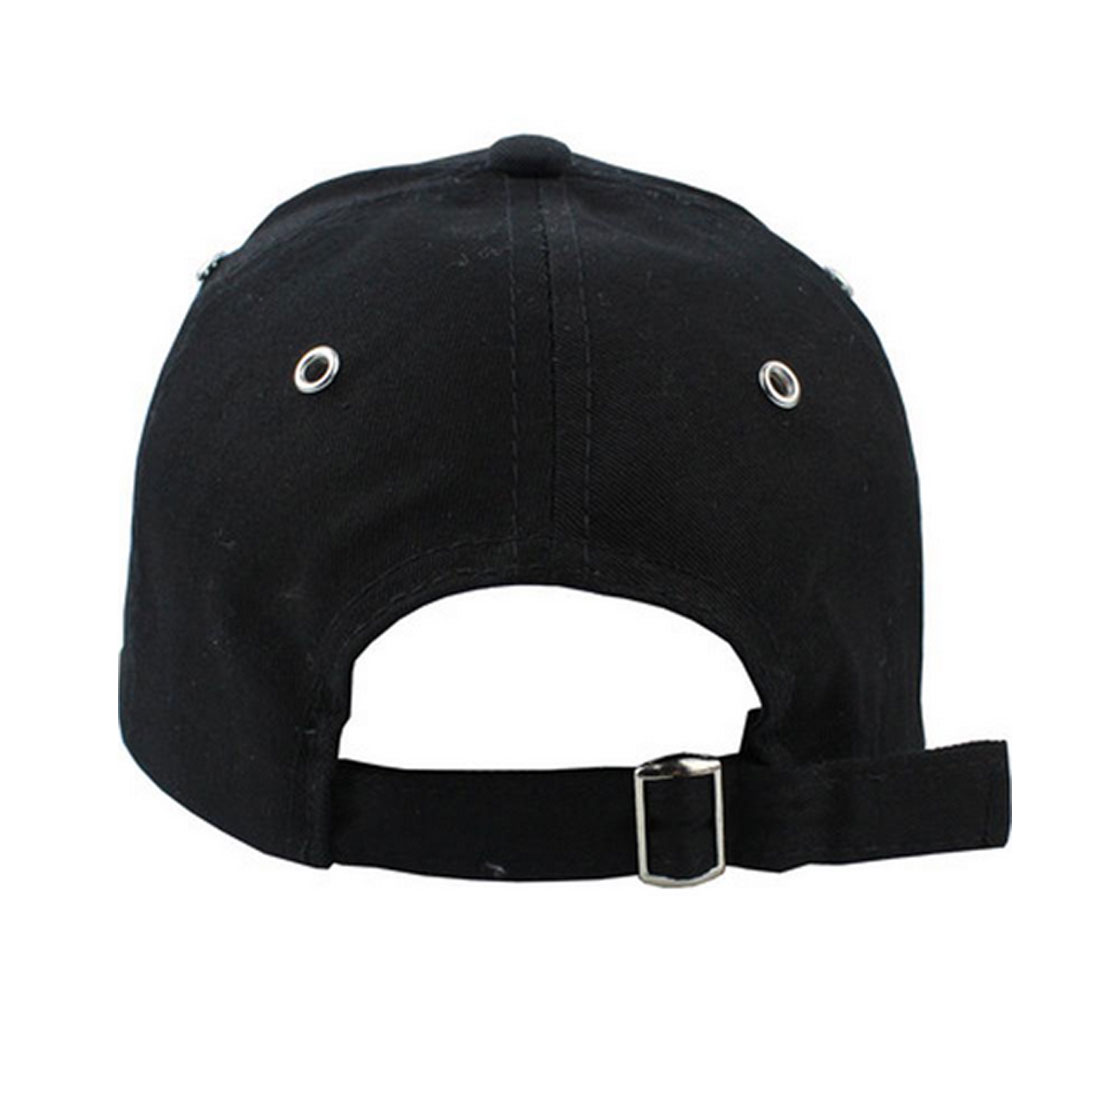 Baseball Cap with Rings Adjustable Casual Sport Hip Hop Ball Hat Baseball Caps Unisex Hats Black Pink White in Men 39 s Baseball Caps from Apparel Accessories